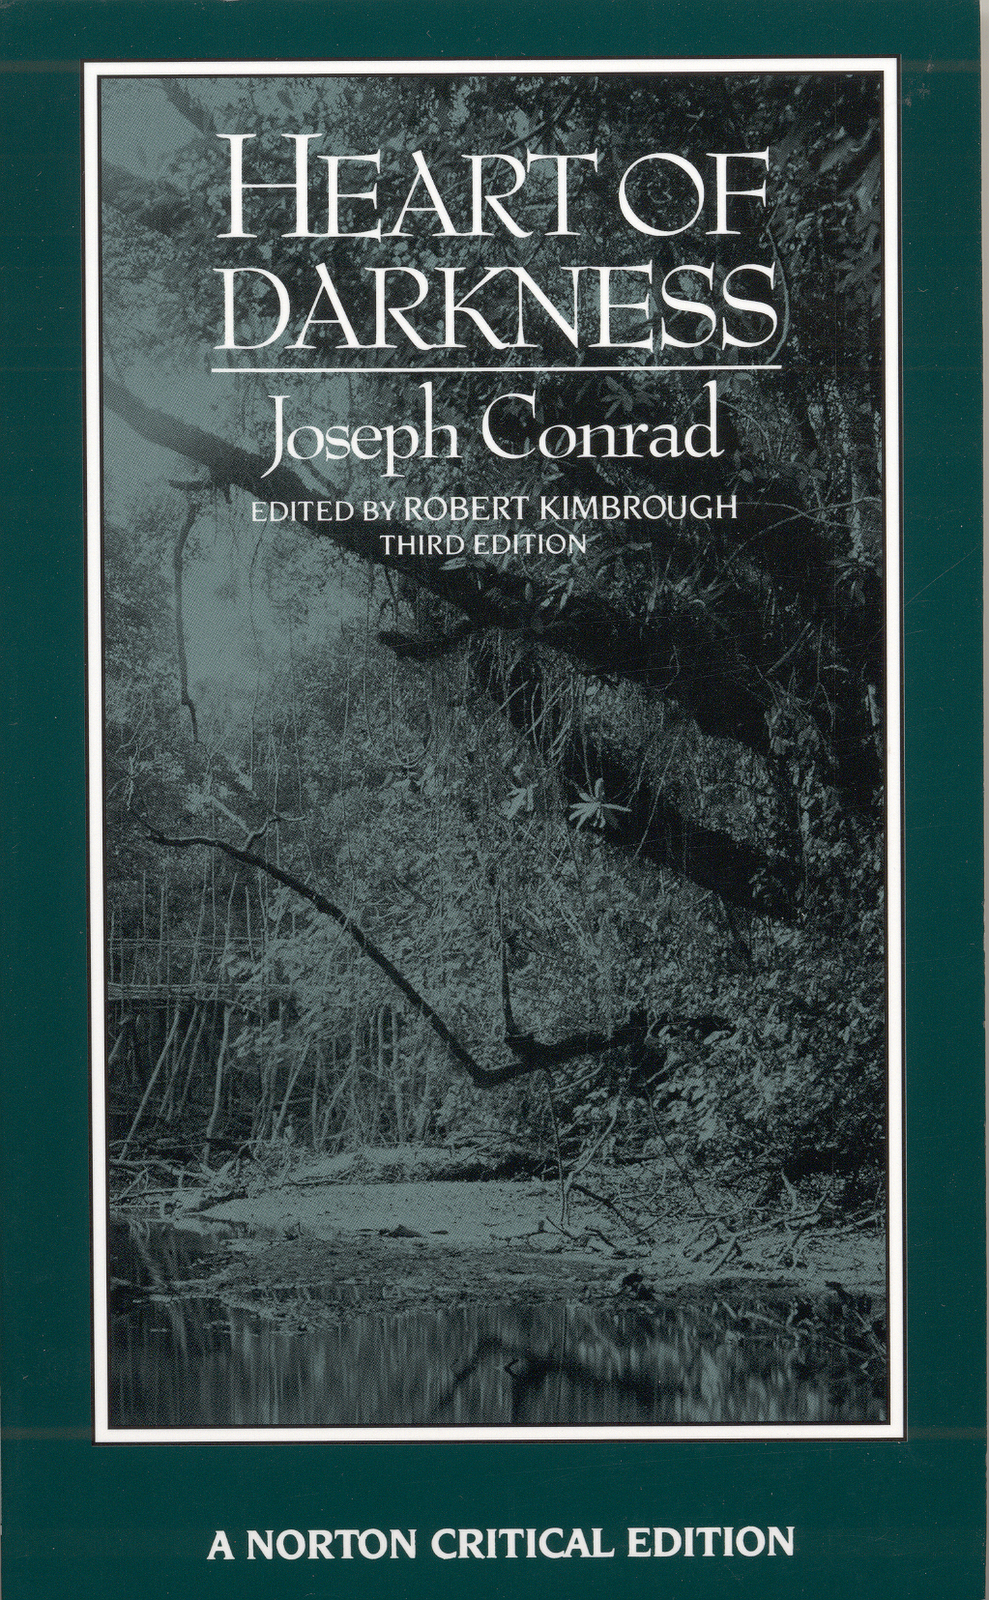 comparing and contrasting heart of darkness Get an answer for 'in heart of darkness, how are marlow and kurtz similar or different ' and find homework help for other heart of darkness, joseph conrad questions at enotes.